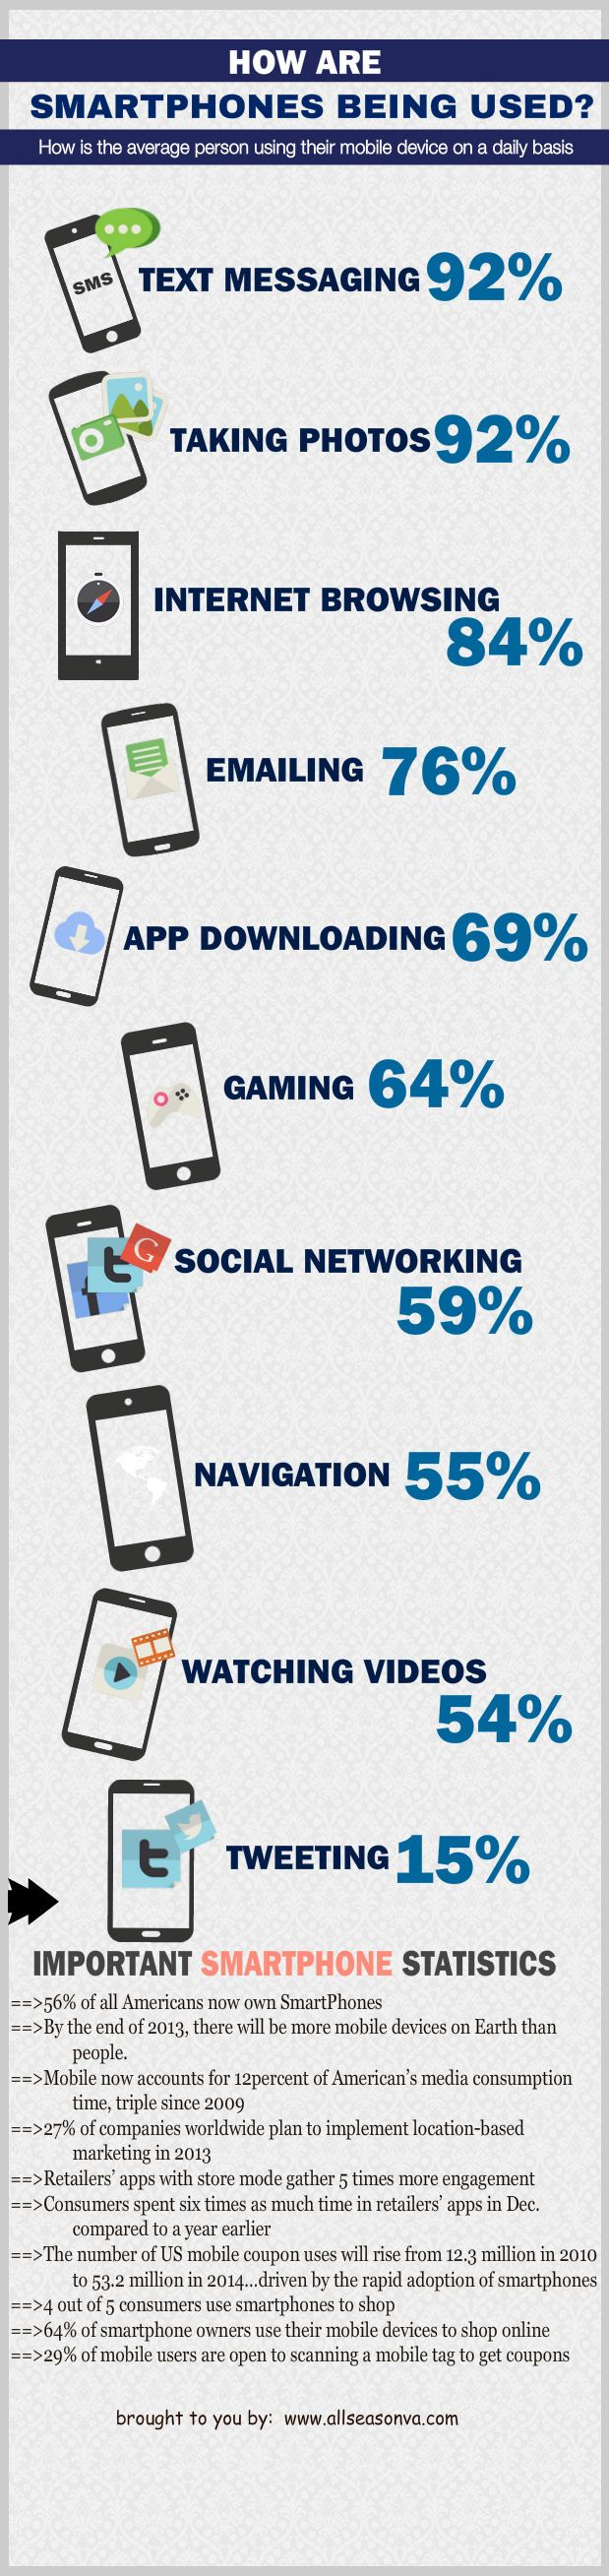 How SmartPhones Are Being Used | Visual.ly